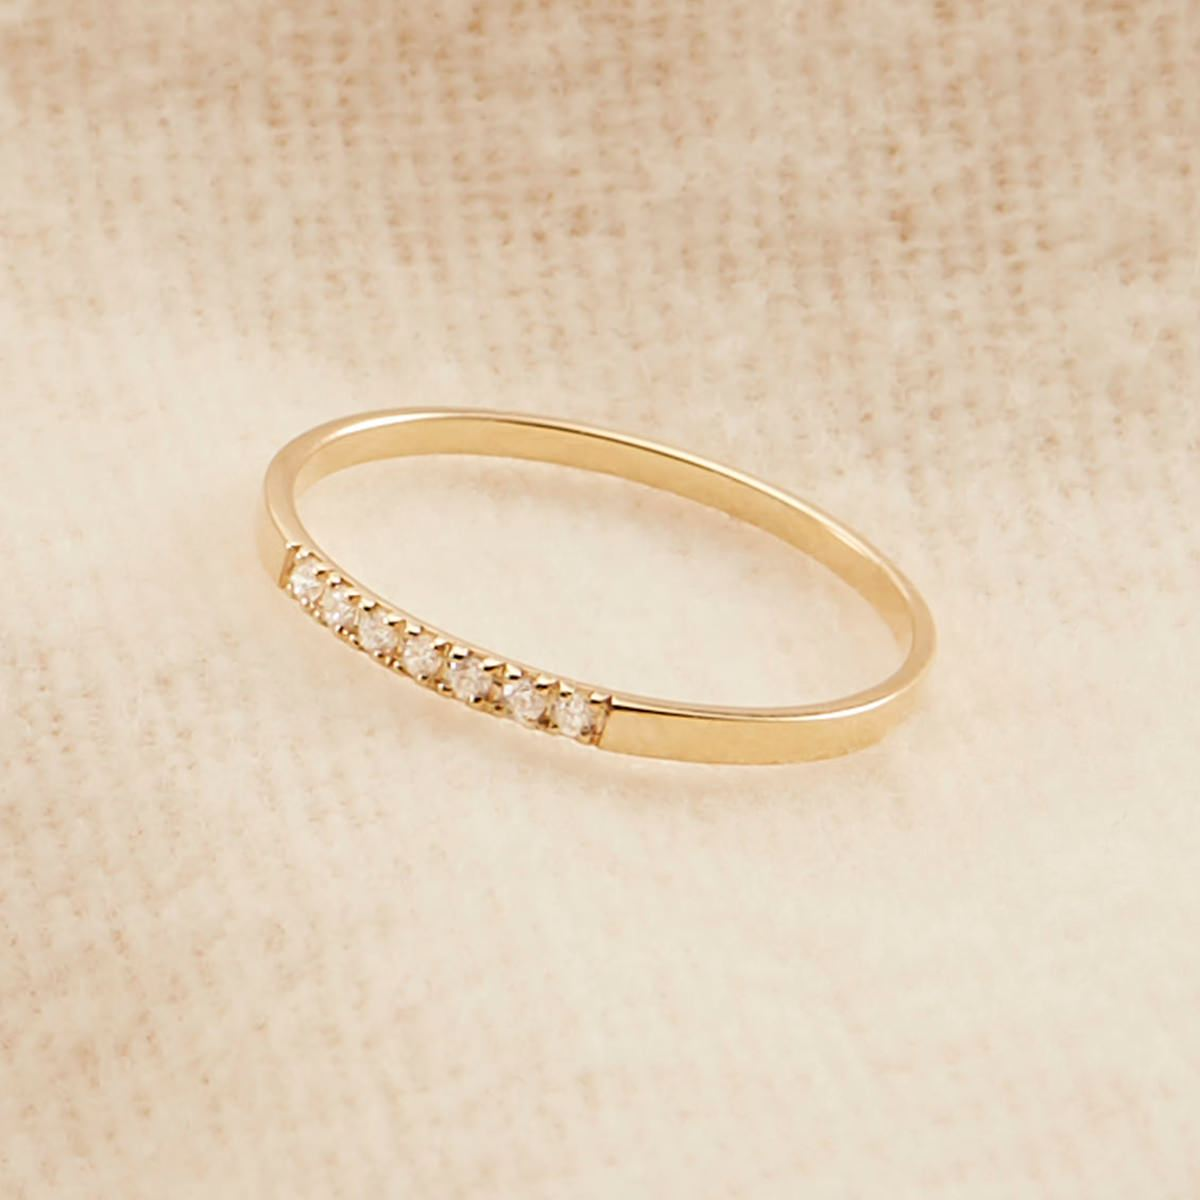 14k Solid Gold, Diamond